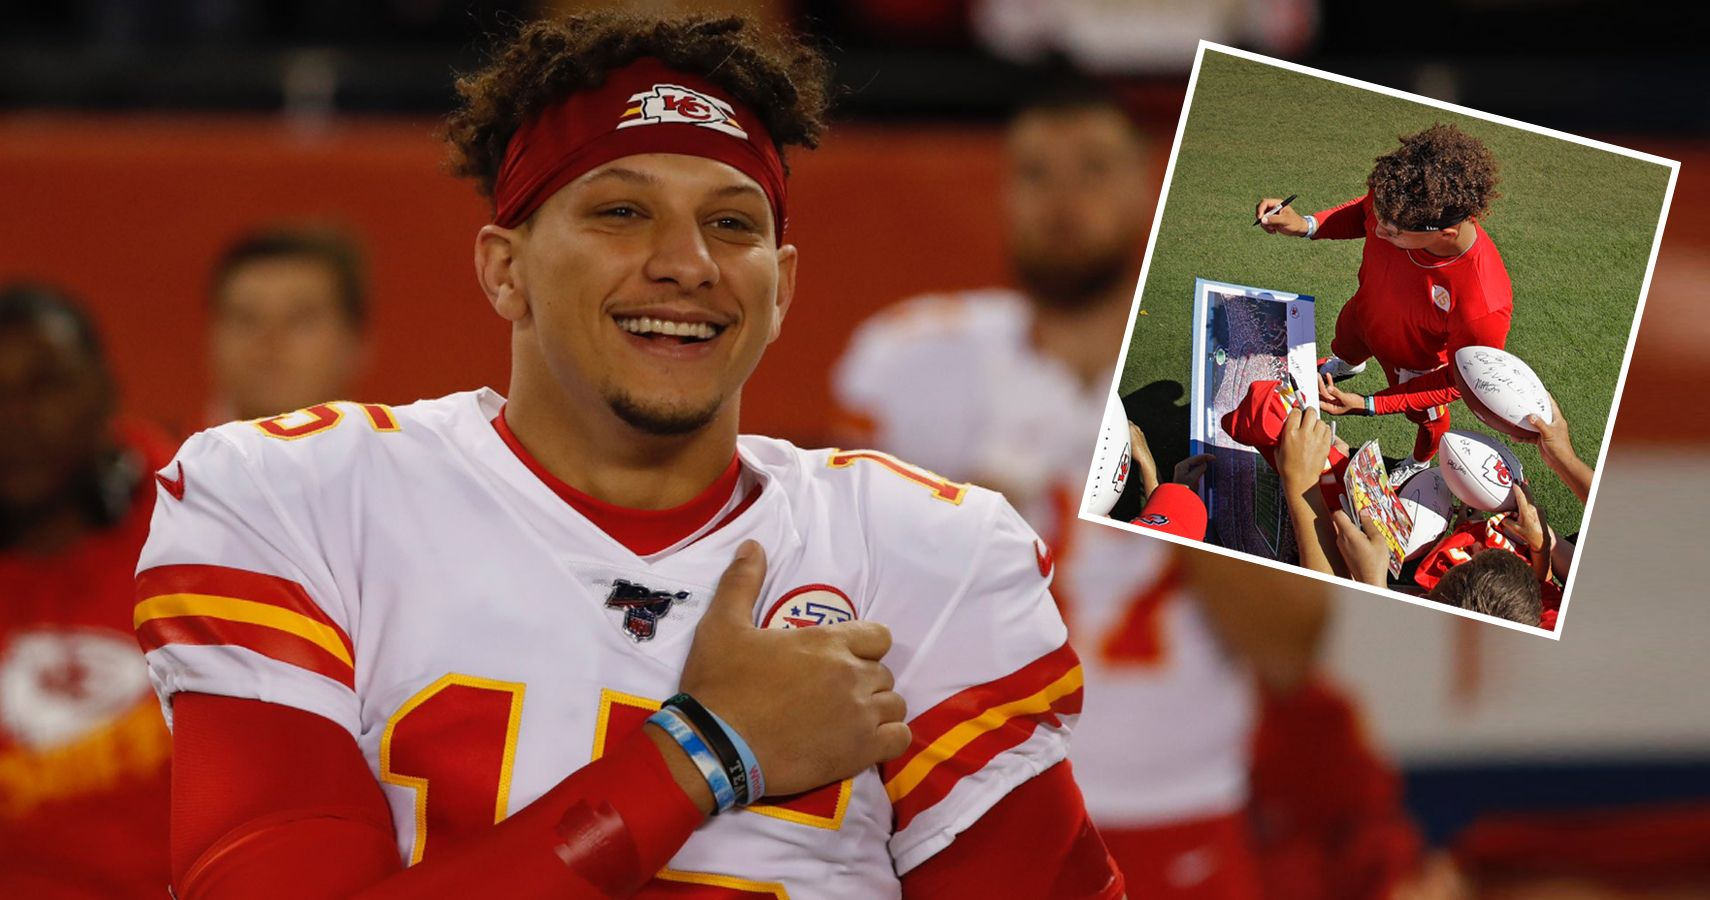 Patrick Mahomes $4.3 Million Rookie Card Breaks Highest Priced Football Card Record